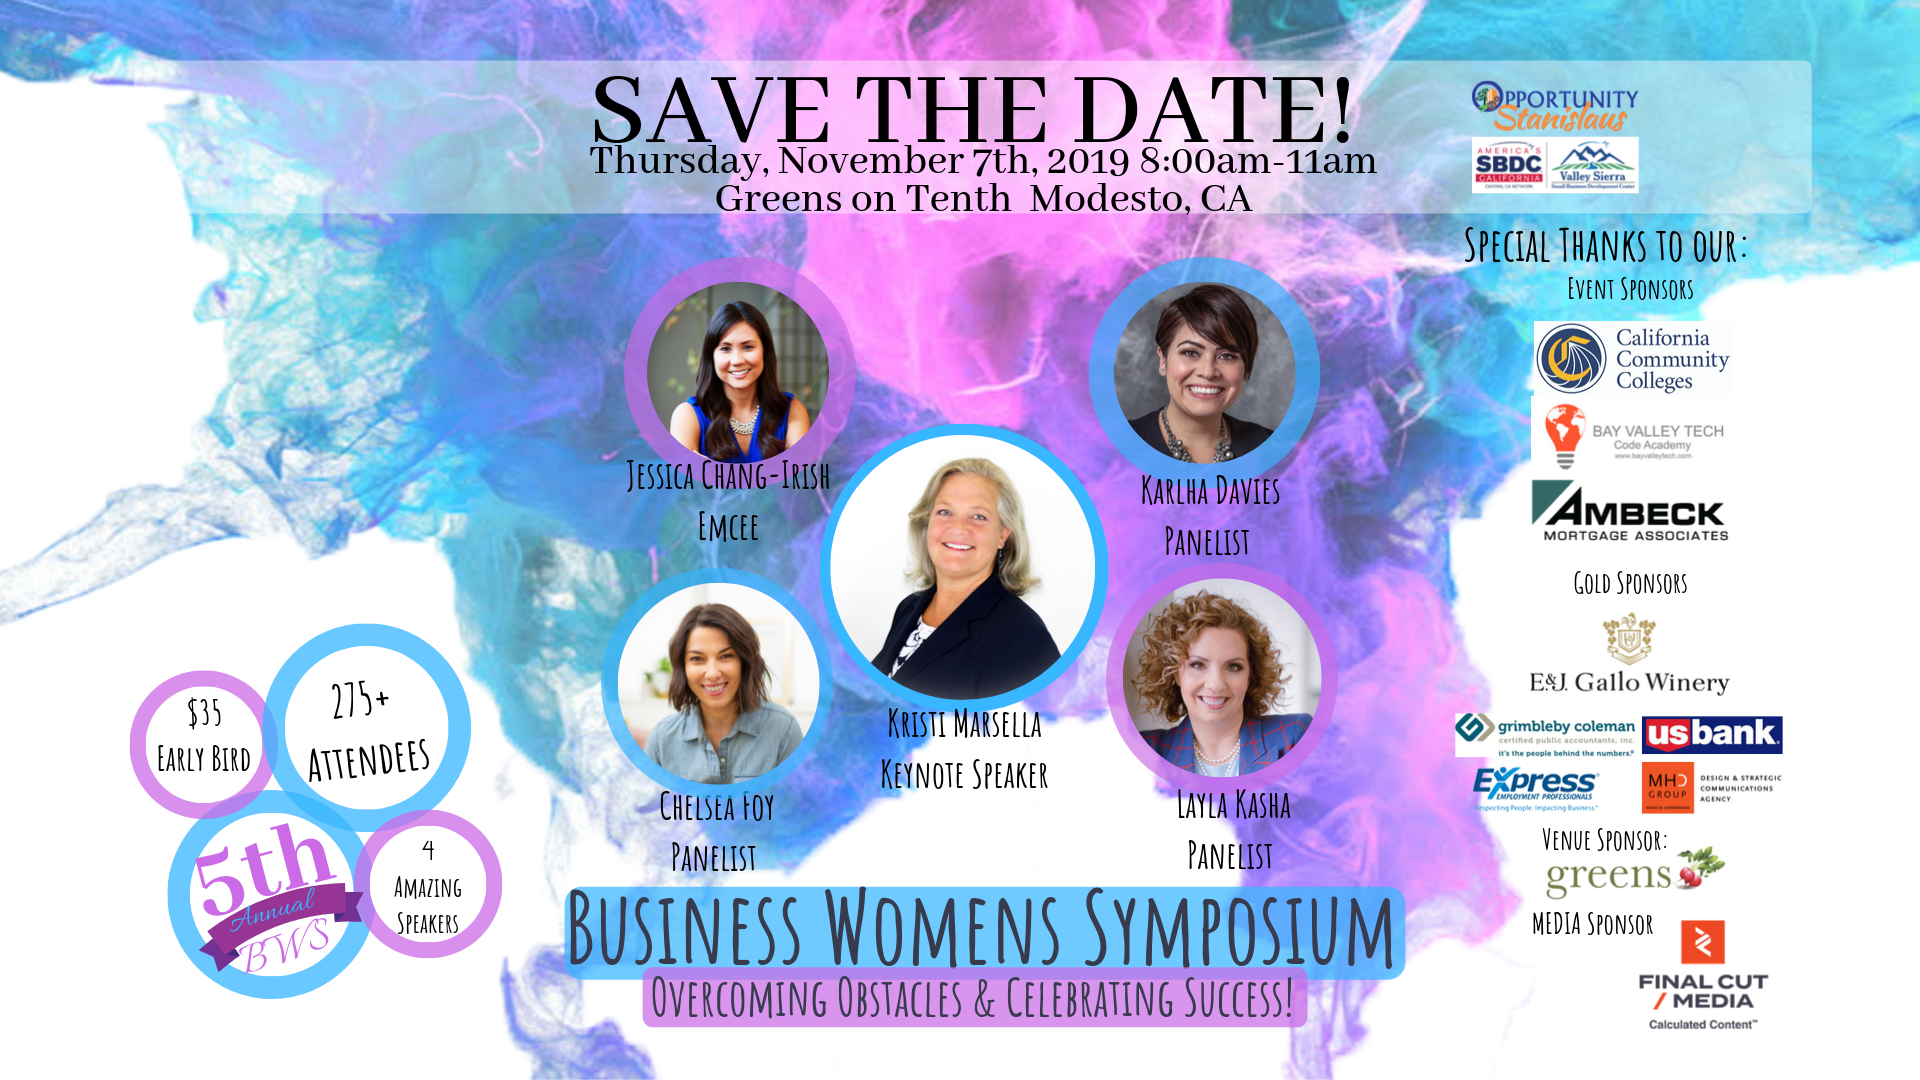 Event Flyer, Business Women's Symposium: Overcoming Obstacles & Celebrating Success   Save the Date! Thursday, November 7th. 2019 8:00am- 11am Greens on Tenth, Modesto, Ca.